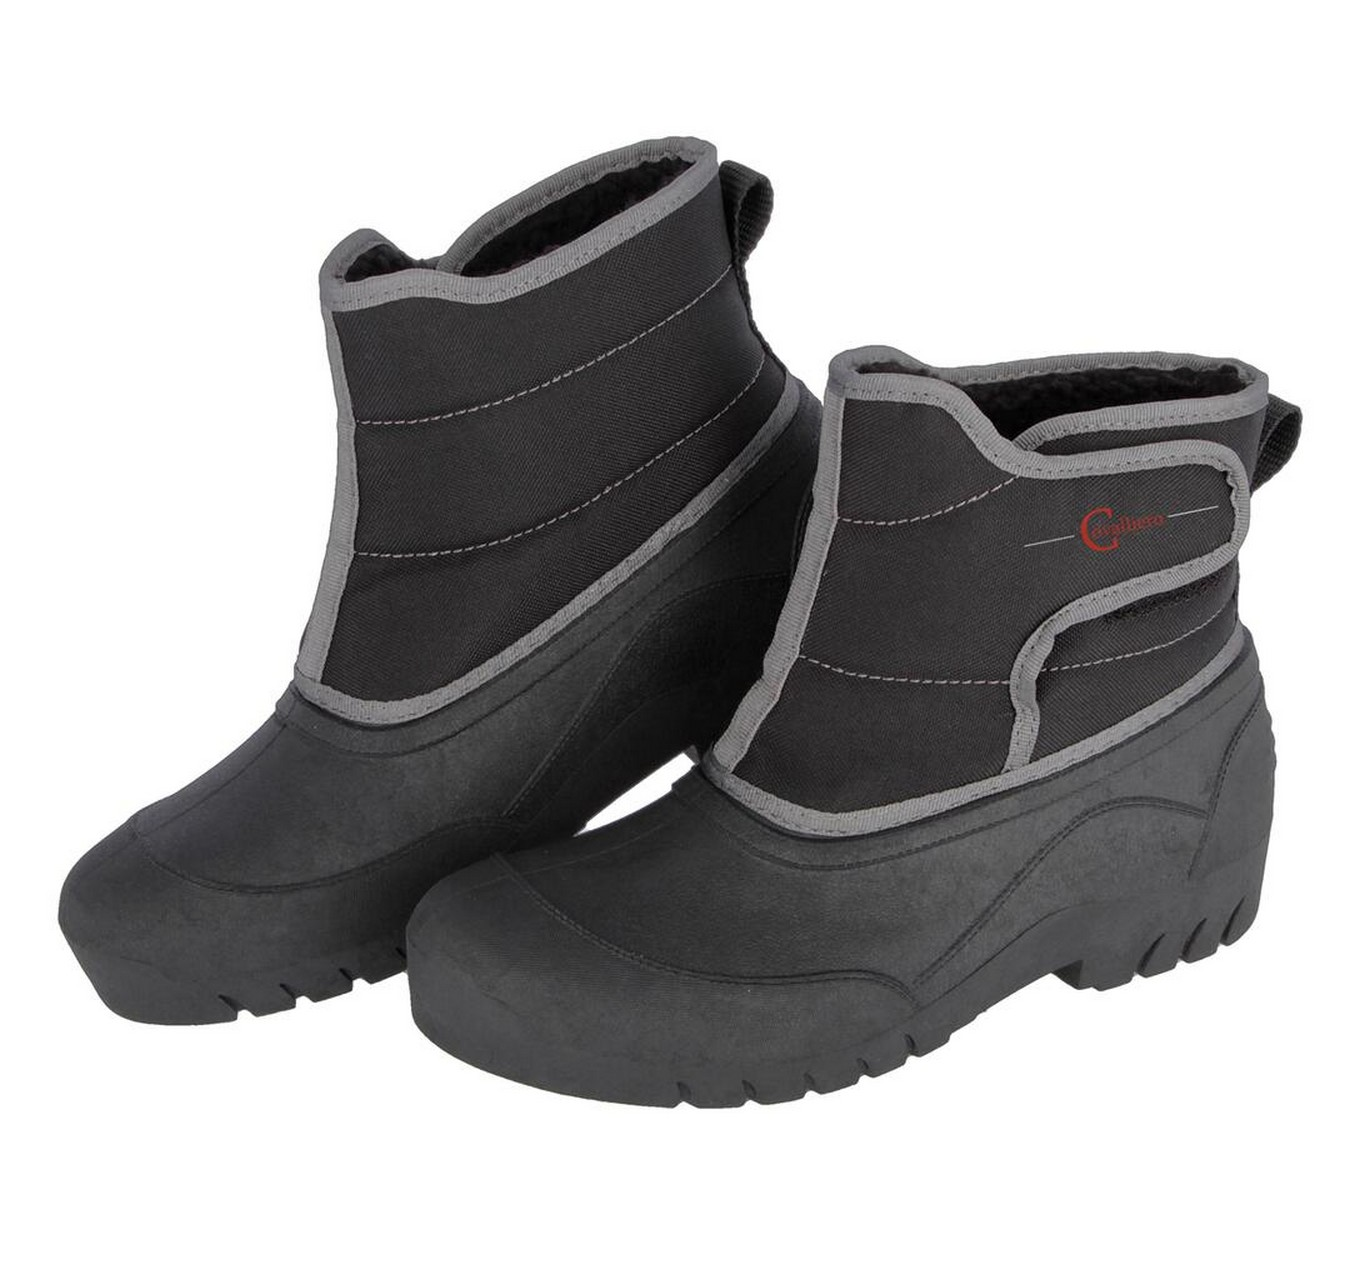 Ottawa Thermal Boot Black 6